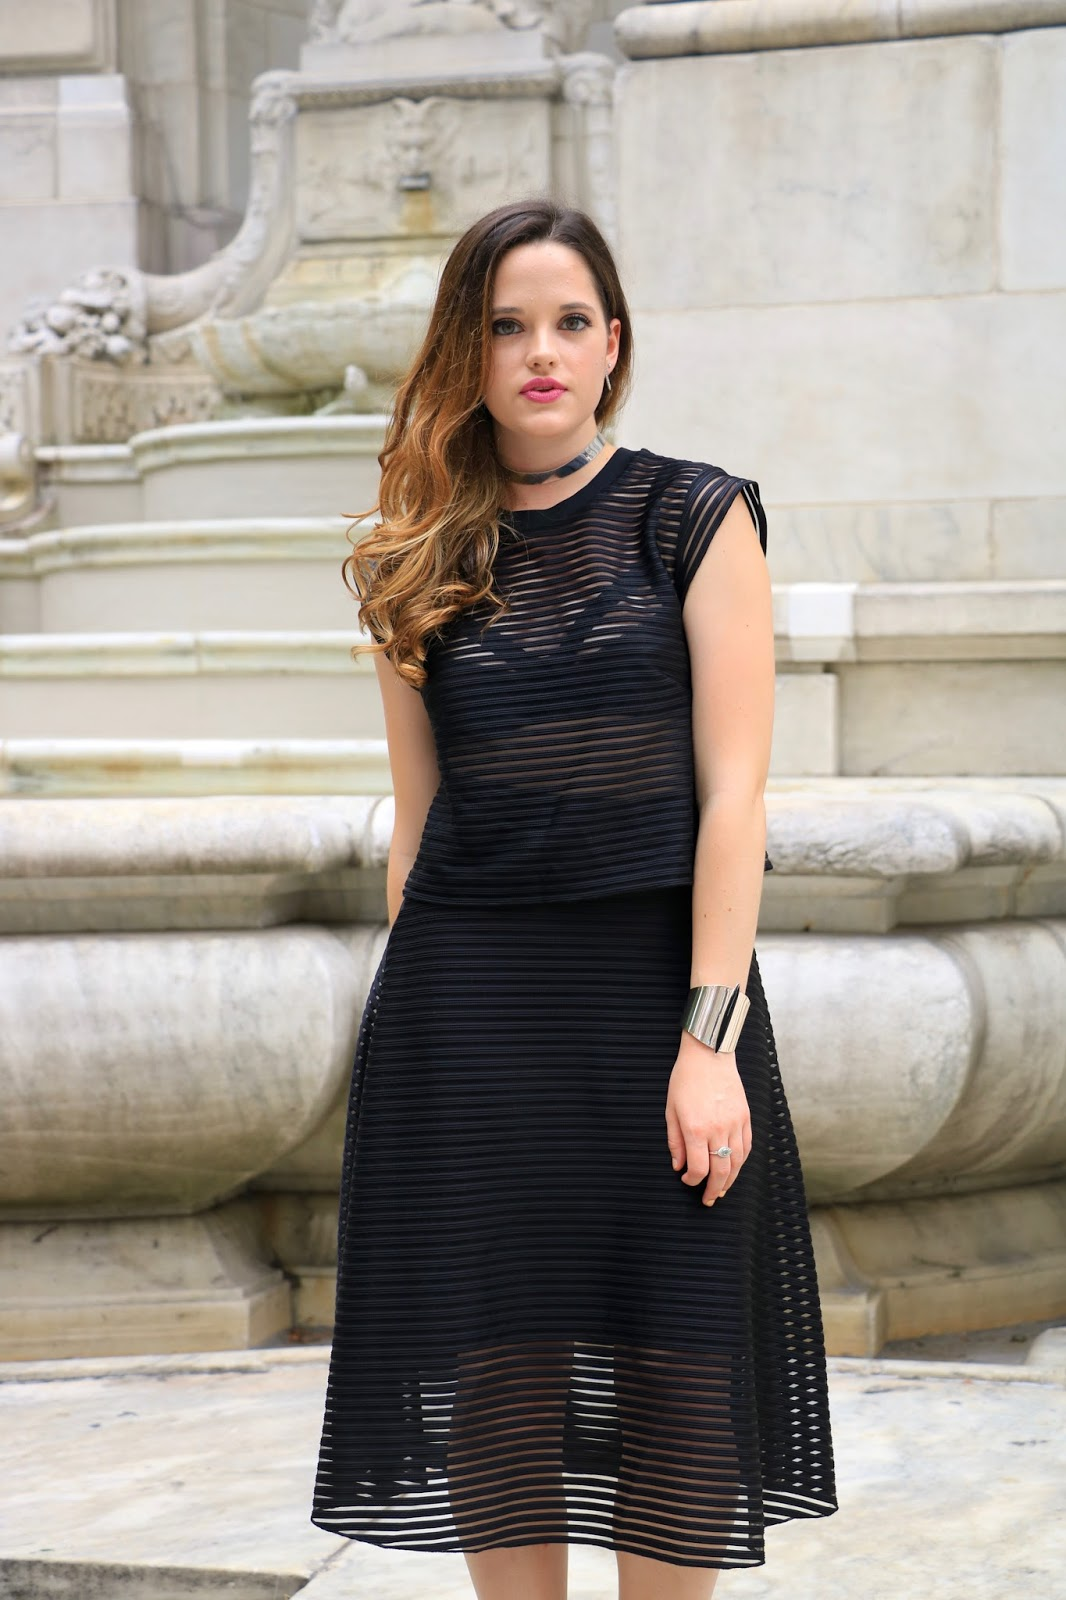 NYC fashion blogger Kat's Fashion Fix wearing a see through mesh outfit